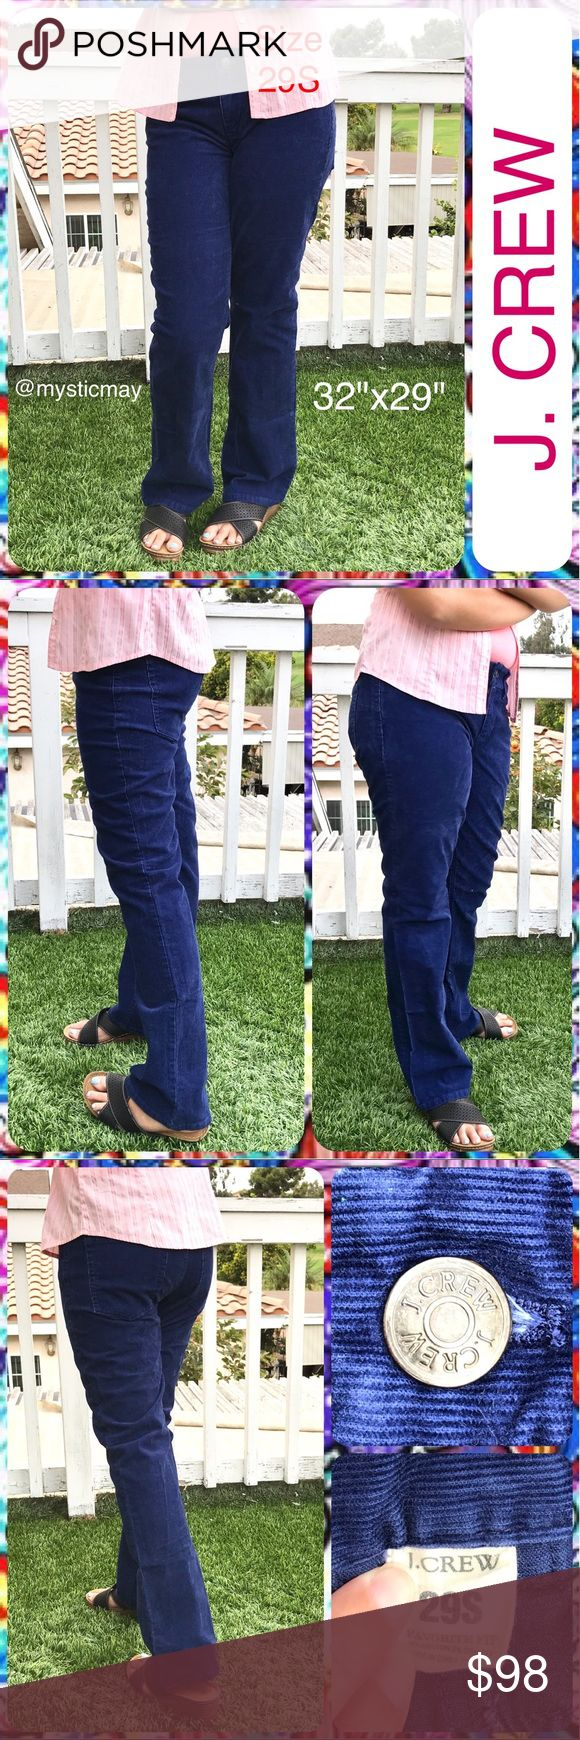 """J.CREW Ladies Blue Mid-Rise 5-Pocket Corduroy Pant Deep blue """" Favorite Fit """" corduroy pants from J. Crew. Mid-rise with classic 5 pocket styling. Cotton/ spandex blend with nice stretch. Ladies Size 29s for those with a 32"""" waist and 29"""" inseam. Overall 38.5"""" in length with 8.5"""" leg opening. In Beautiful Condition! J. Crew Pants Trousers"""